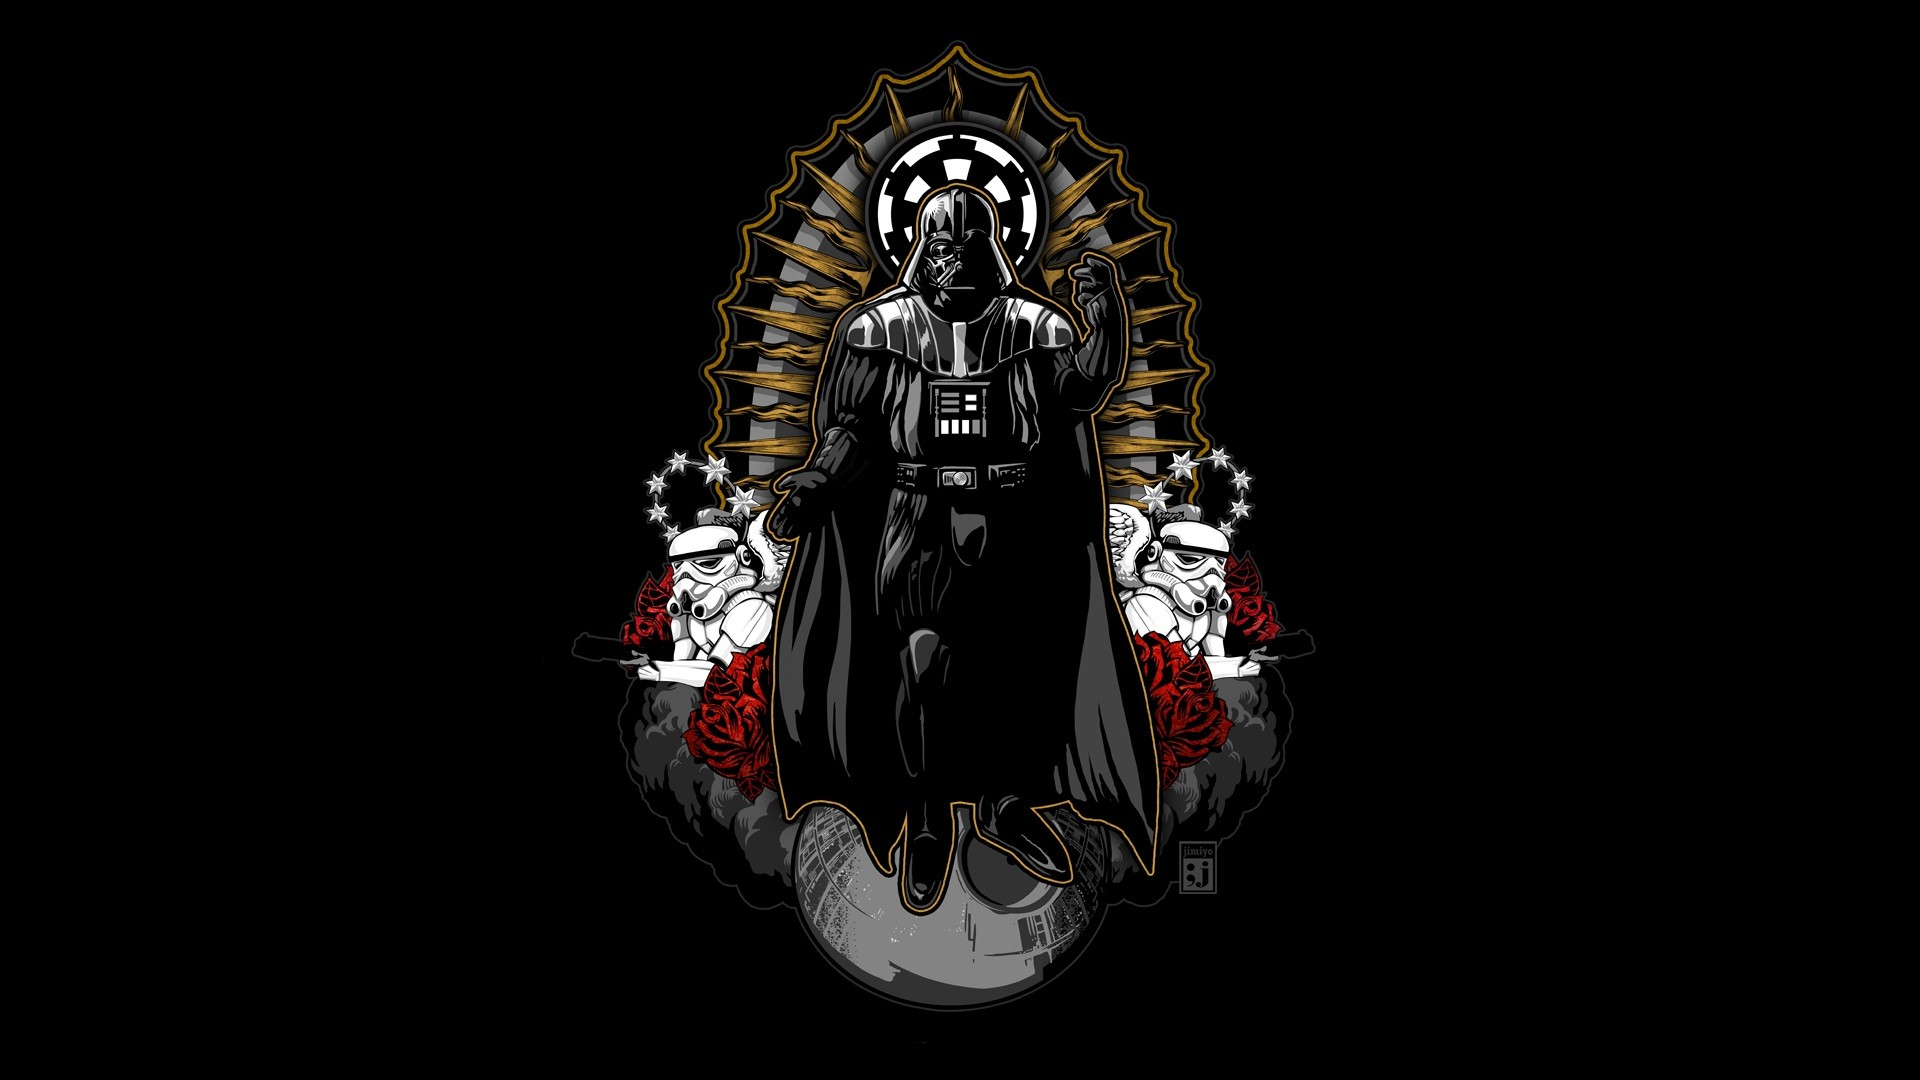 darth-vader-wallpaper-throne-hd